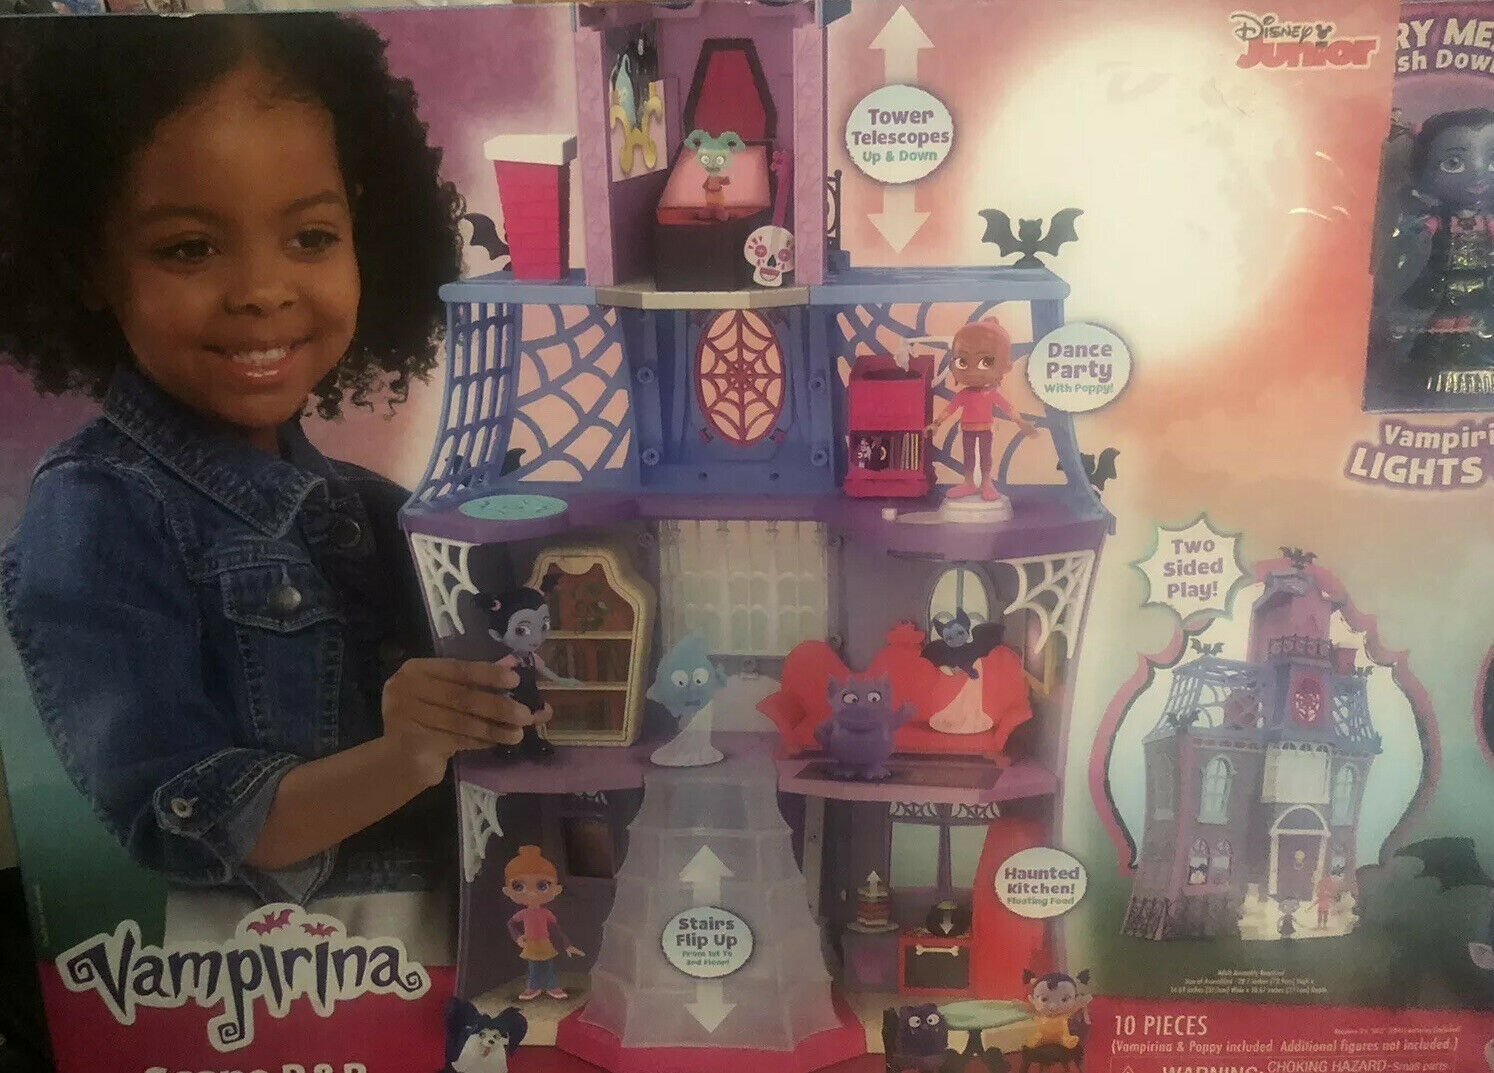 NEW Vampirina Scare B&B Playset Kids Dollhouse Girls Play Set Tower Doll House